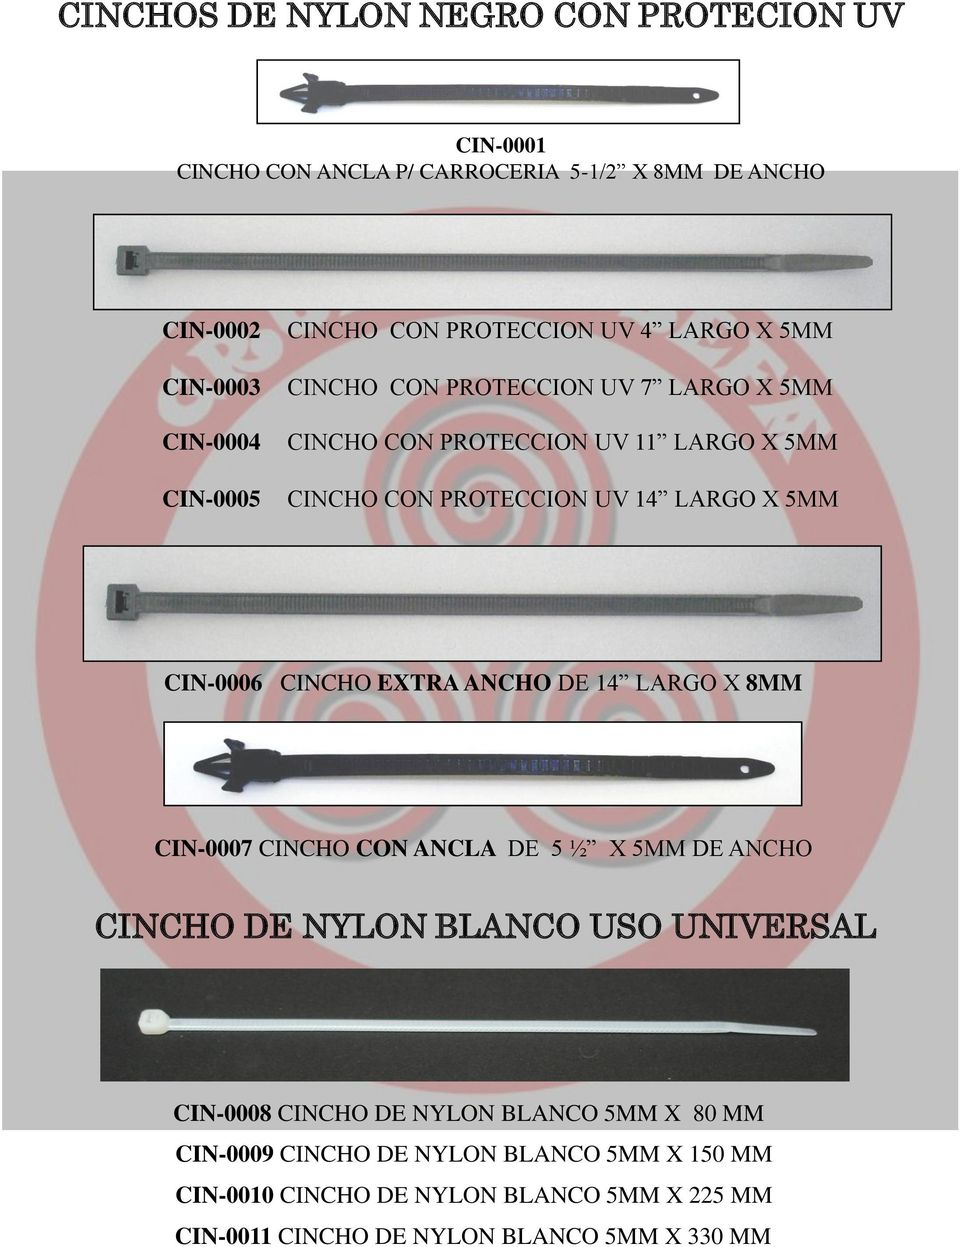 CIN-0006 CINCHO EXTRA ANCHO DE 14 LARGO X 8MM CIN-0007 CINCHO CON ANCLA DE 5 ½ X 5MM DE ANCHO CINCHO DE NYLON BLANCO USO UNIVERSAL CIN-0008 CINCHO DE